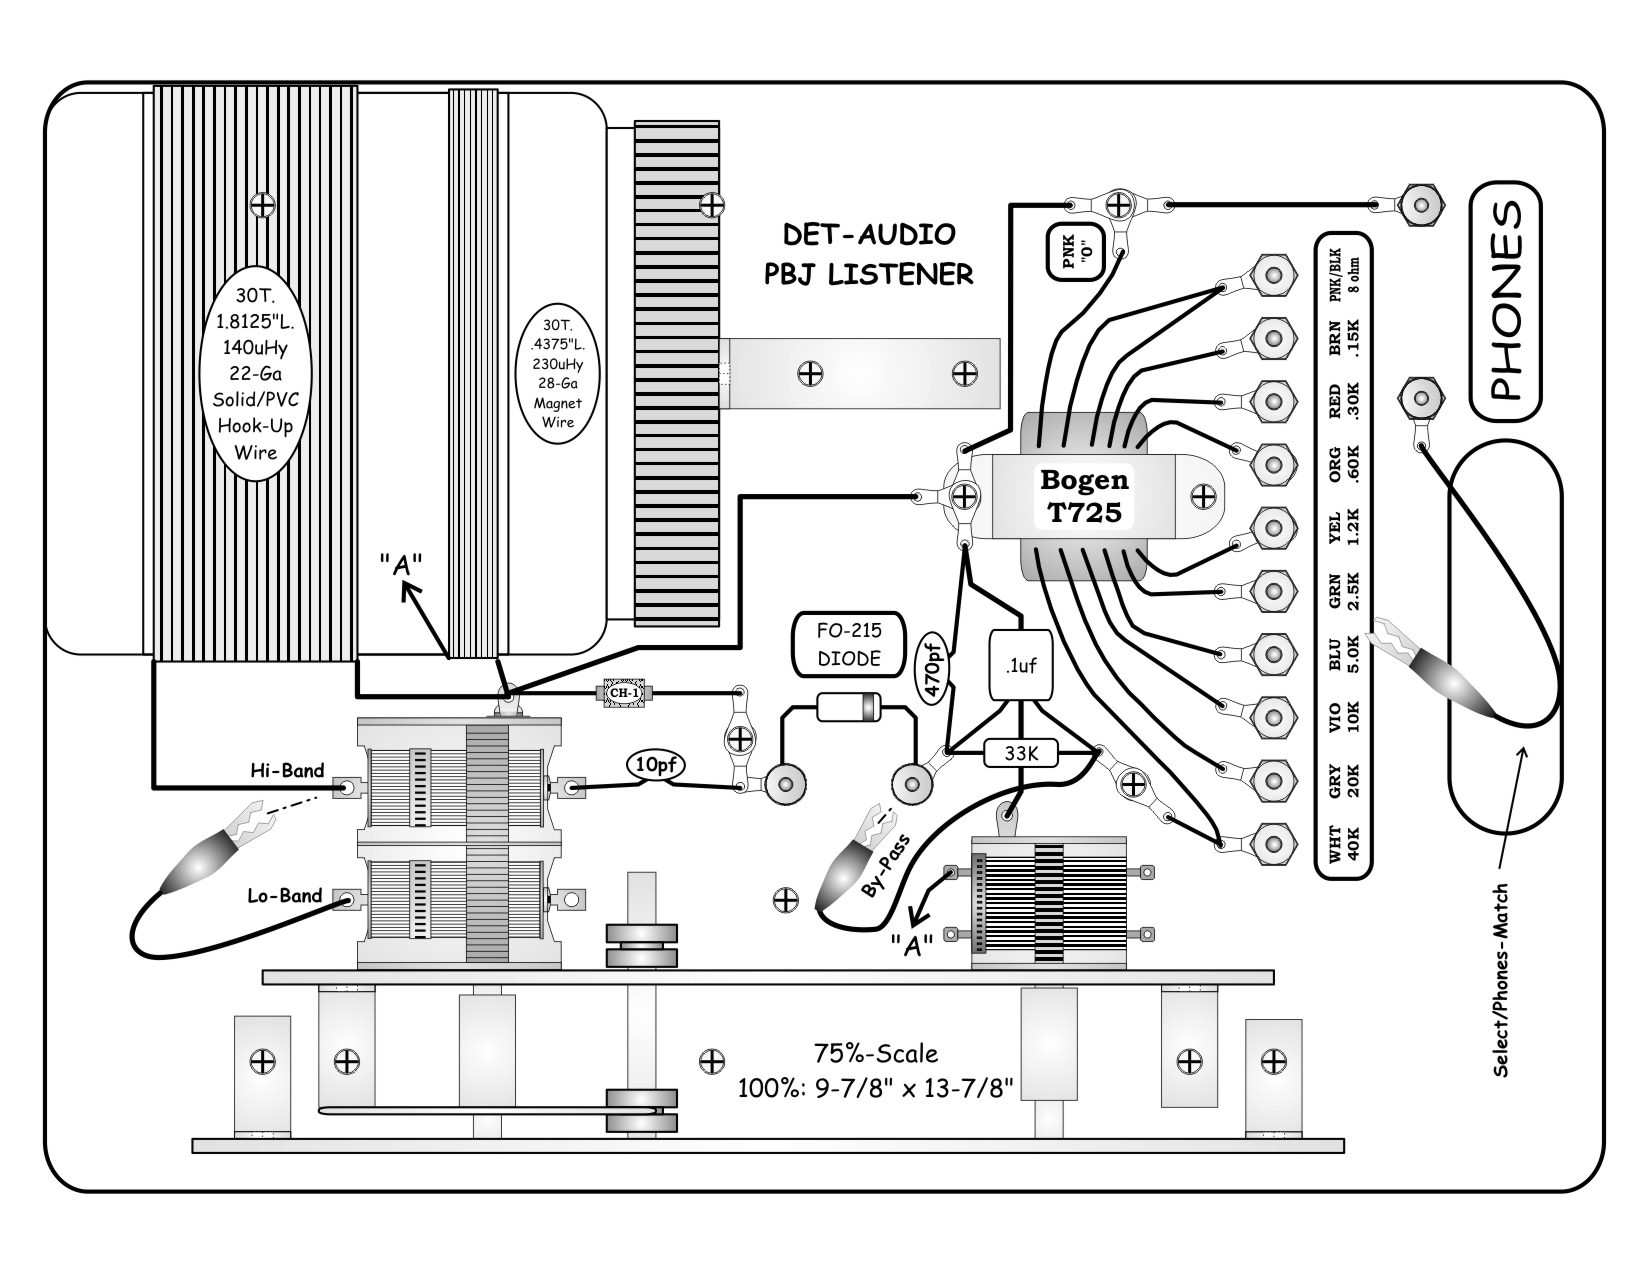 Audio Wiring Diagrams Gmc Diagram Schemes